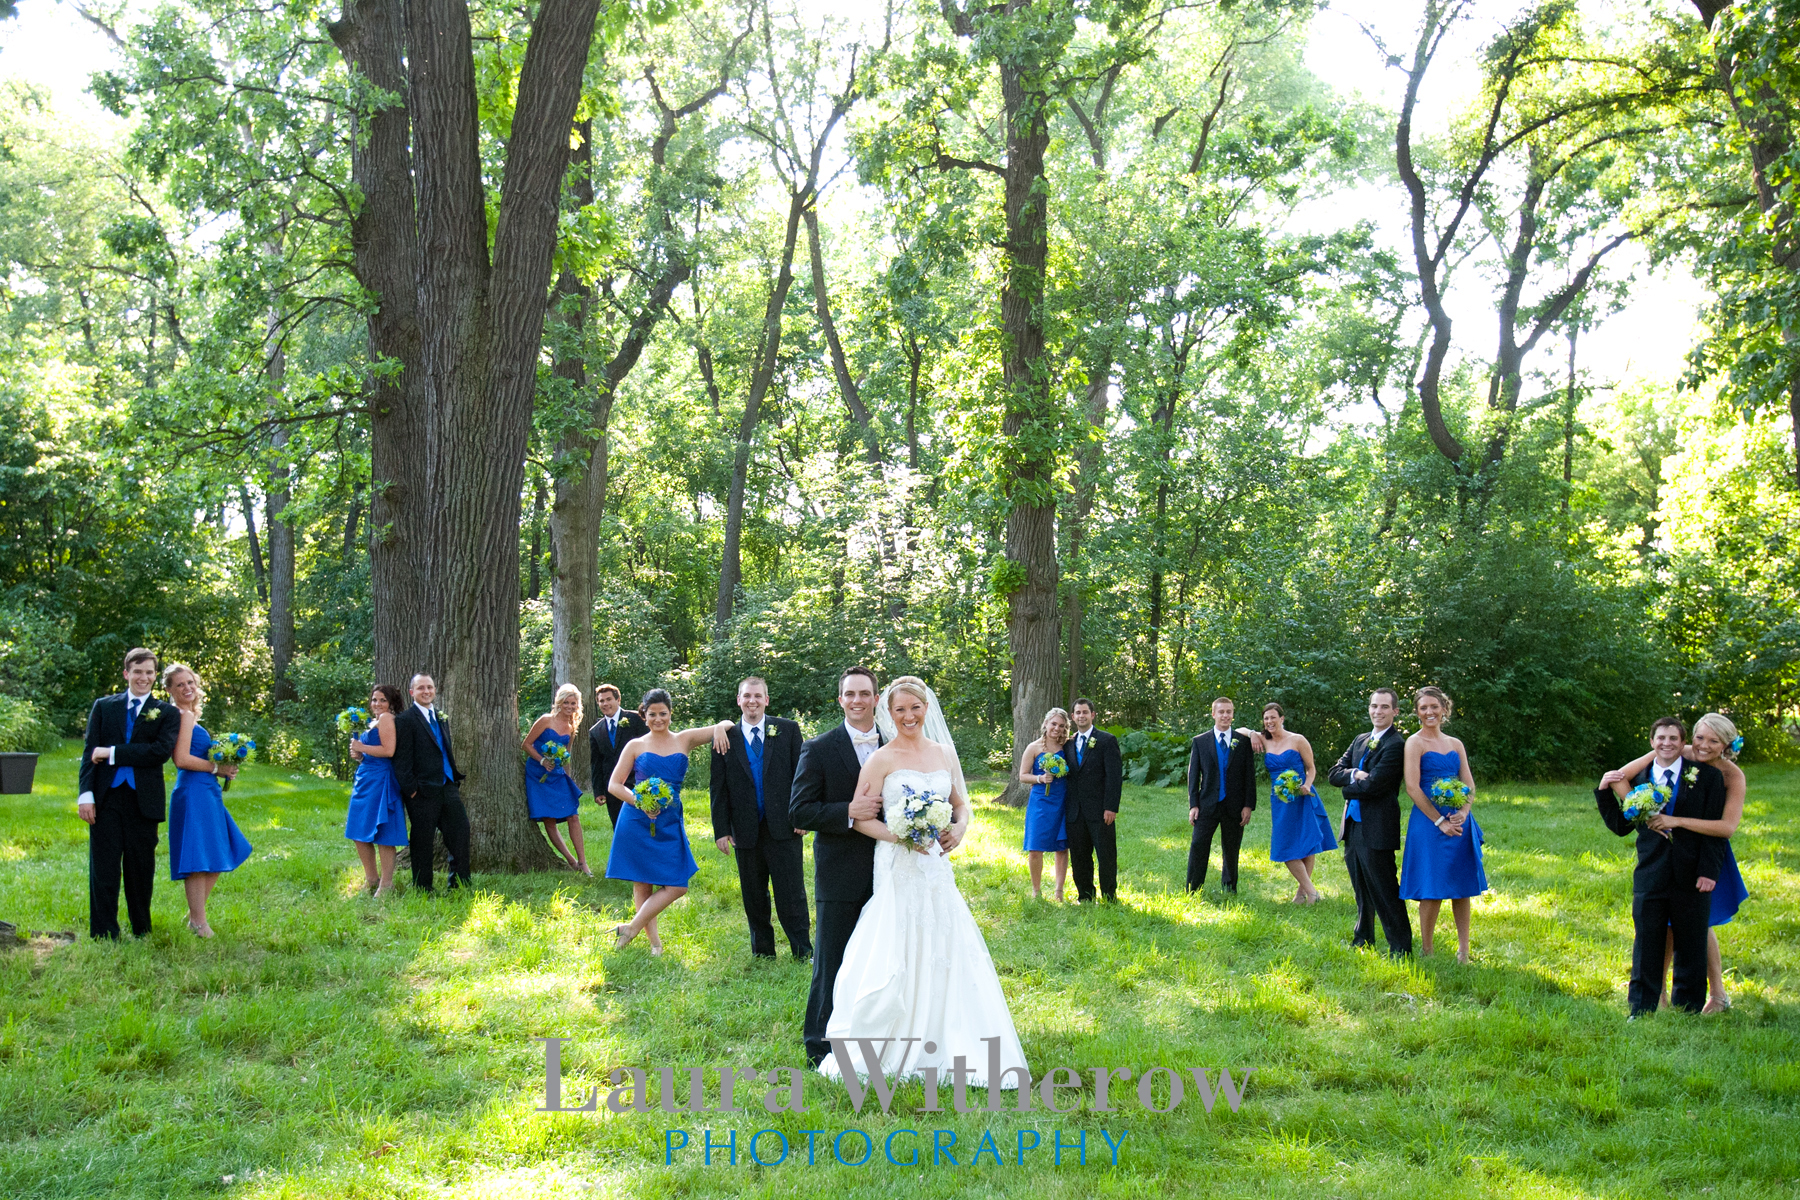 hyatt-lodge-oak-brrok-wedding-photos.jpg